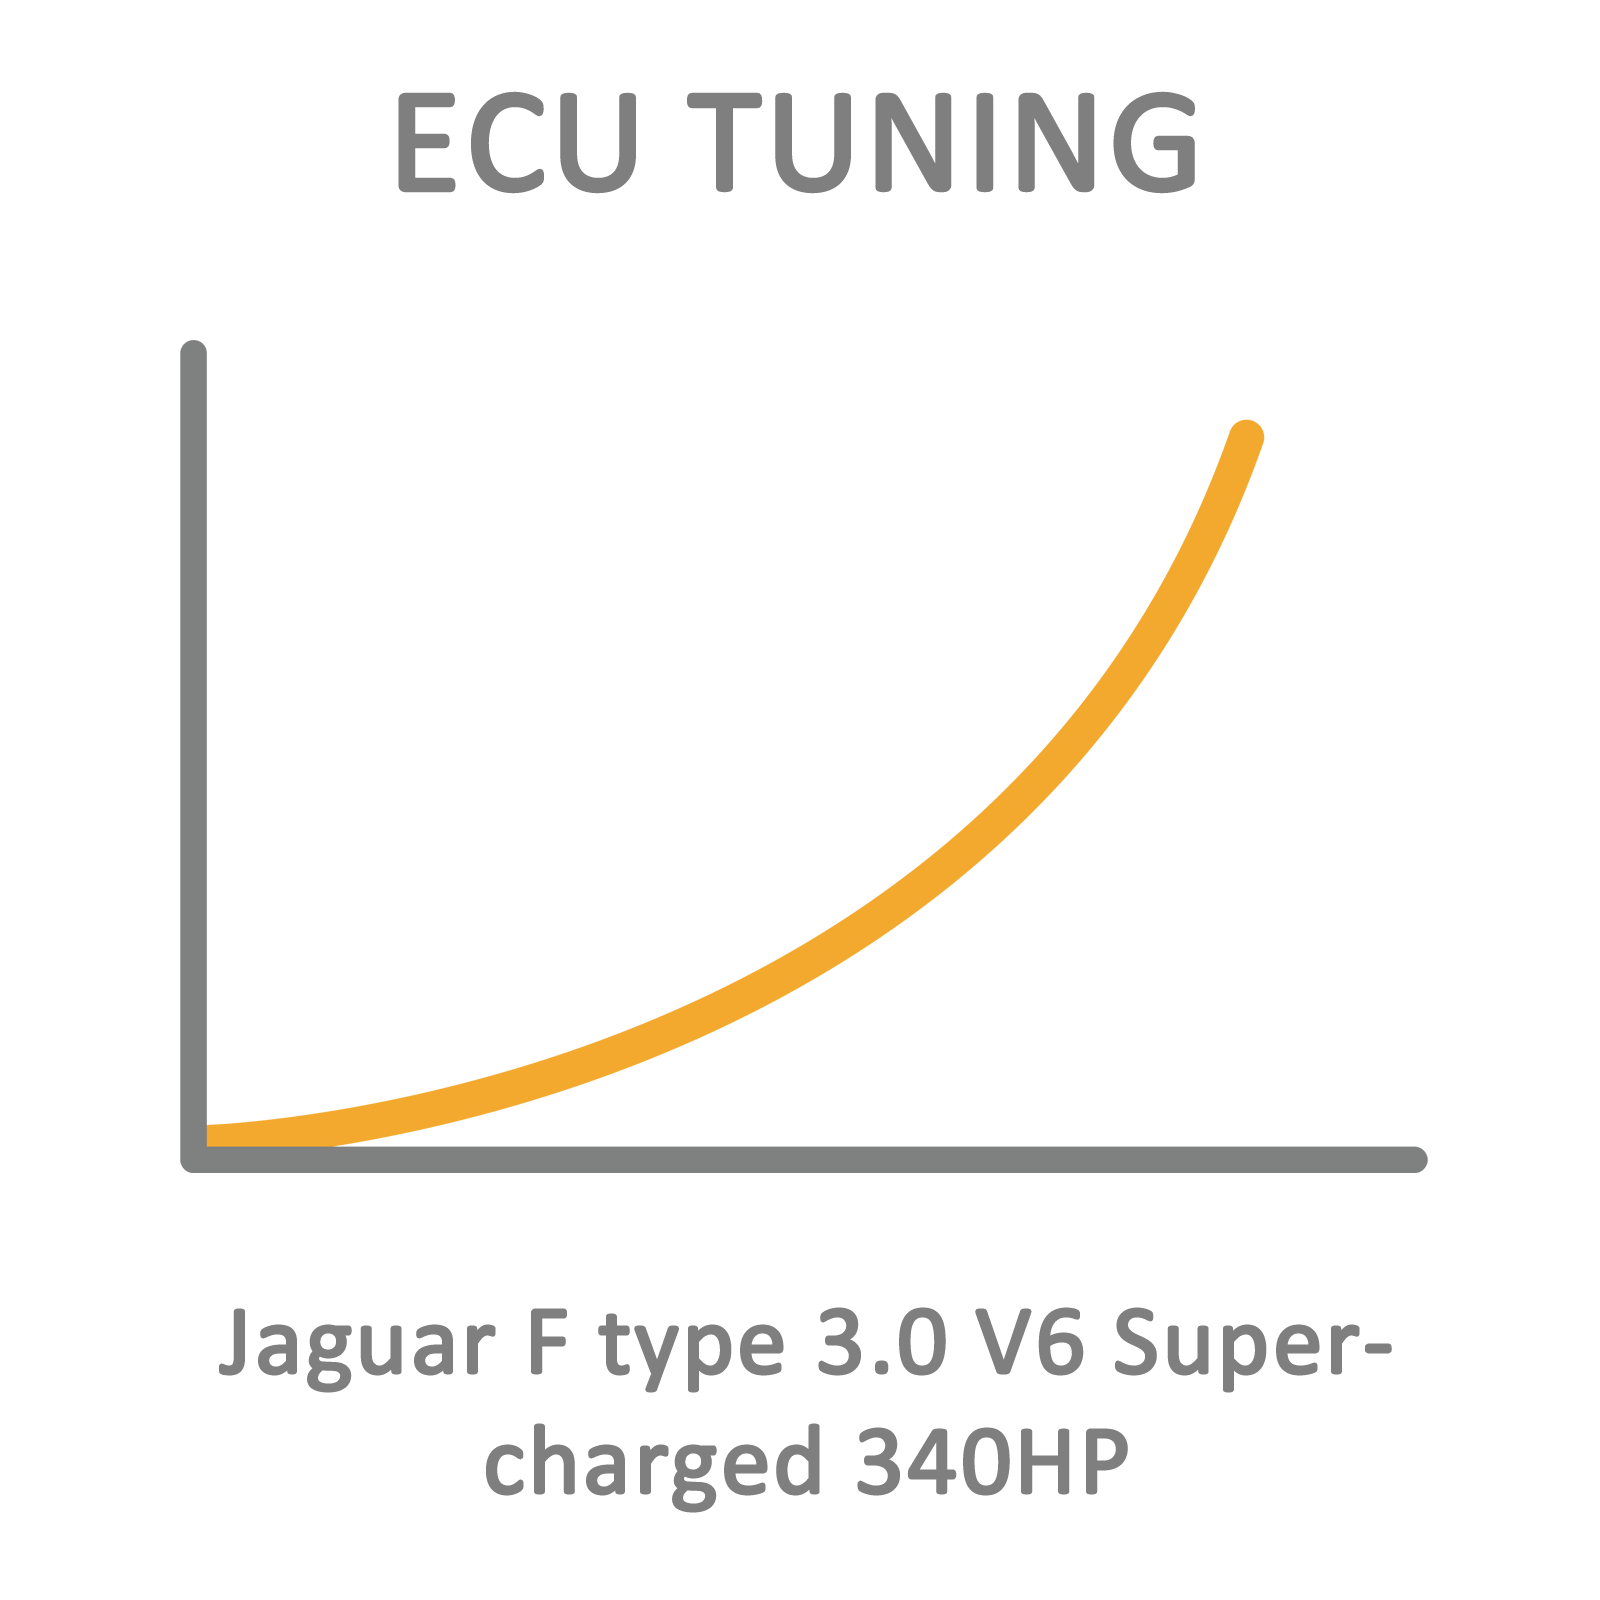 Jaguar F type 3.0 V6 Supercharged 340HP ECU Tuning